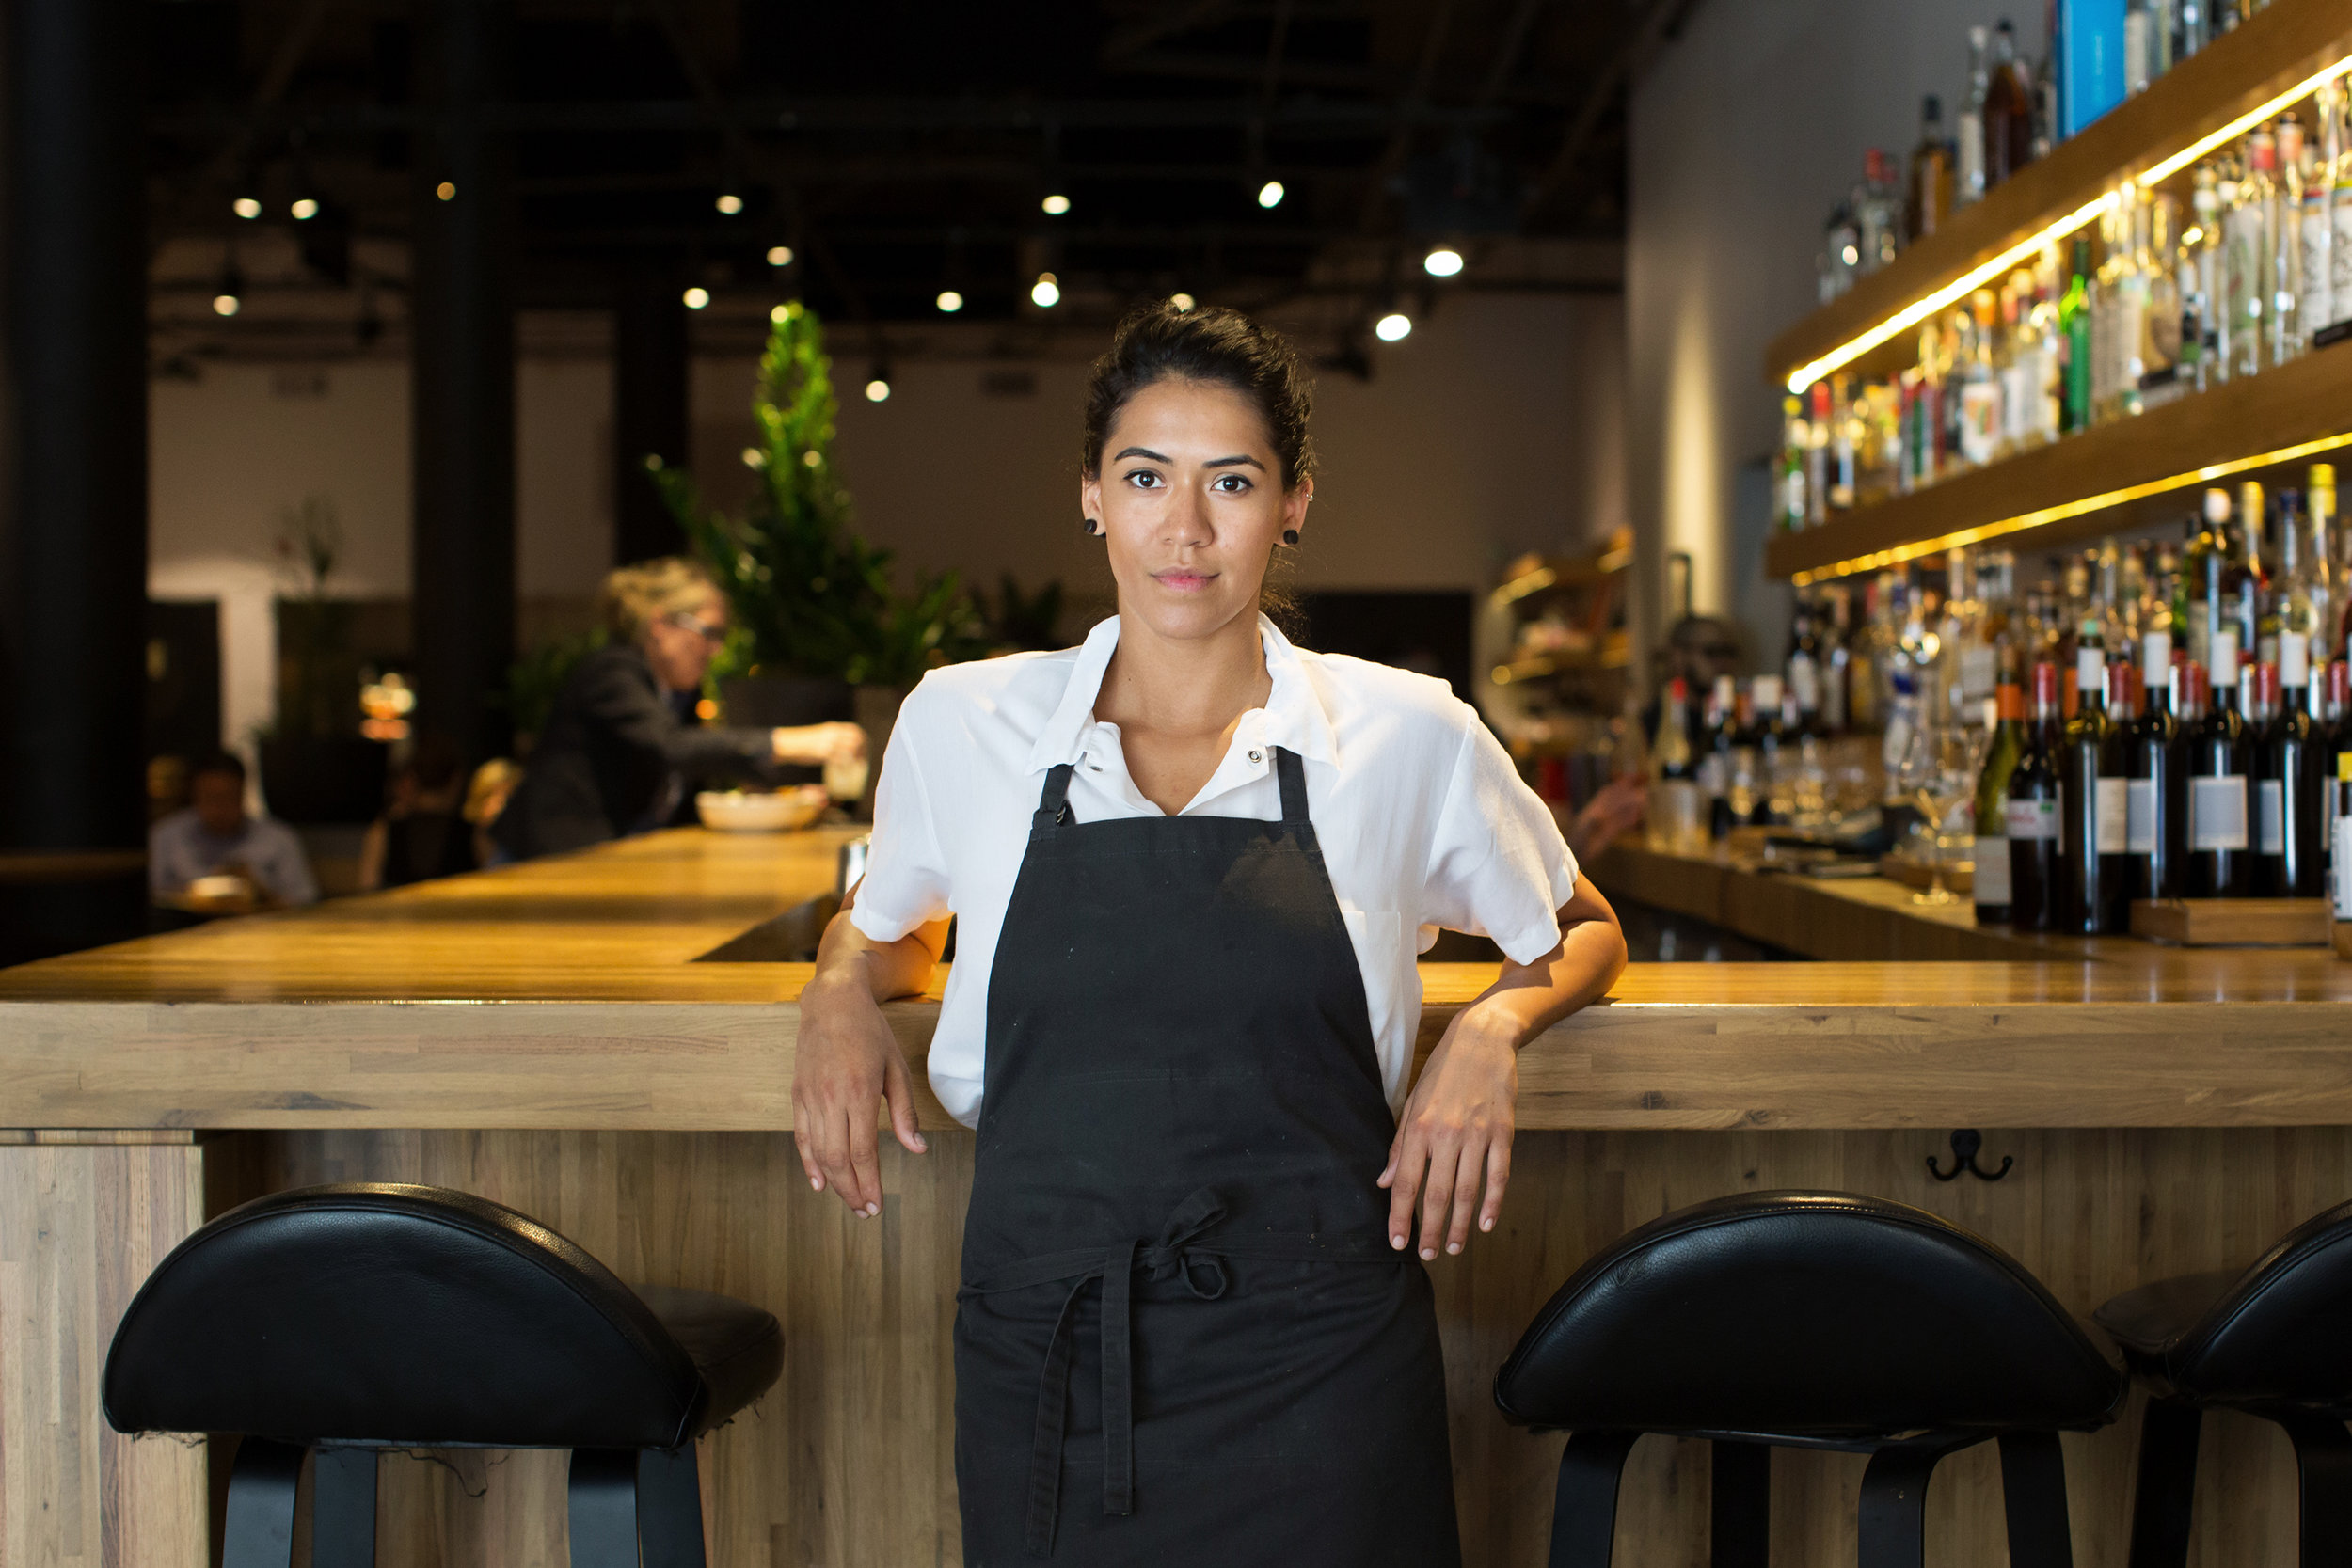 25 Year old executive chef Daniela Soto-Innes standing for a portrait at Cosme, a Mexican restaurant in Manhattan.